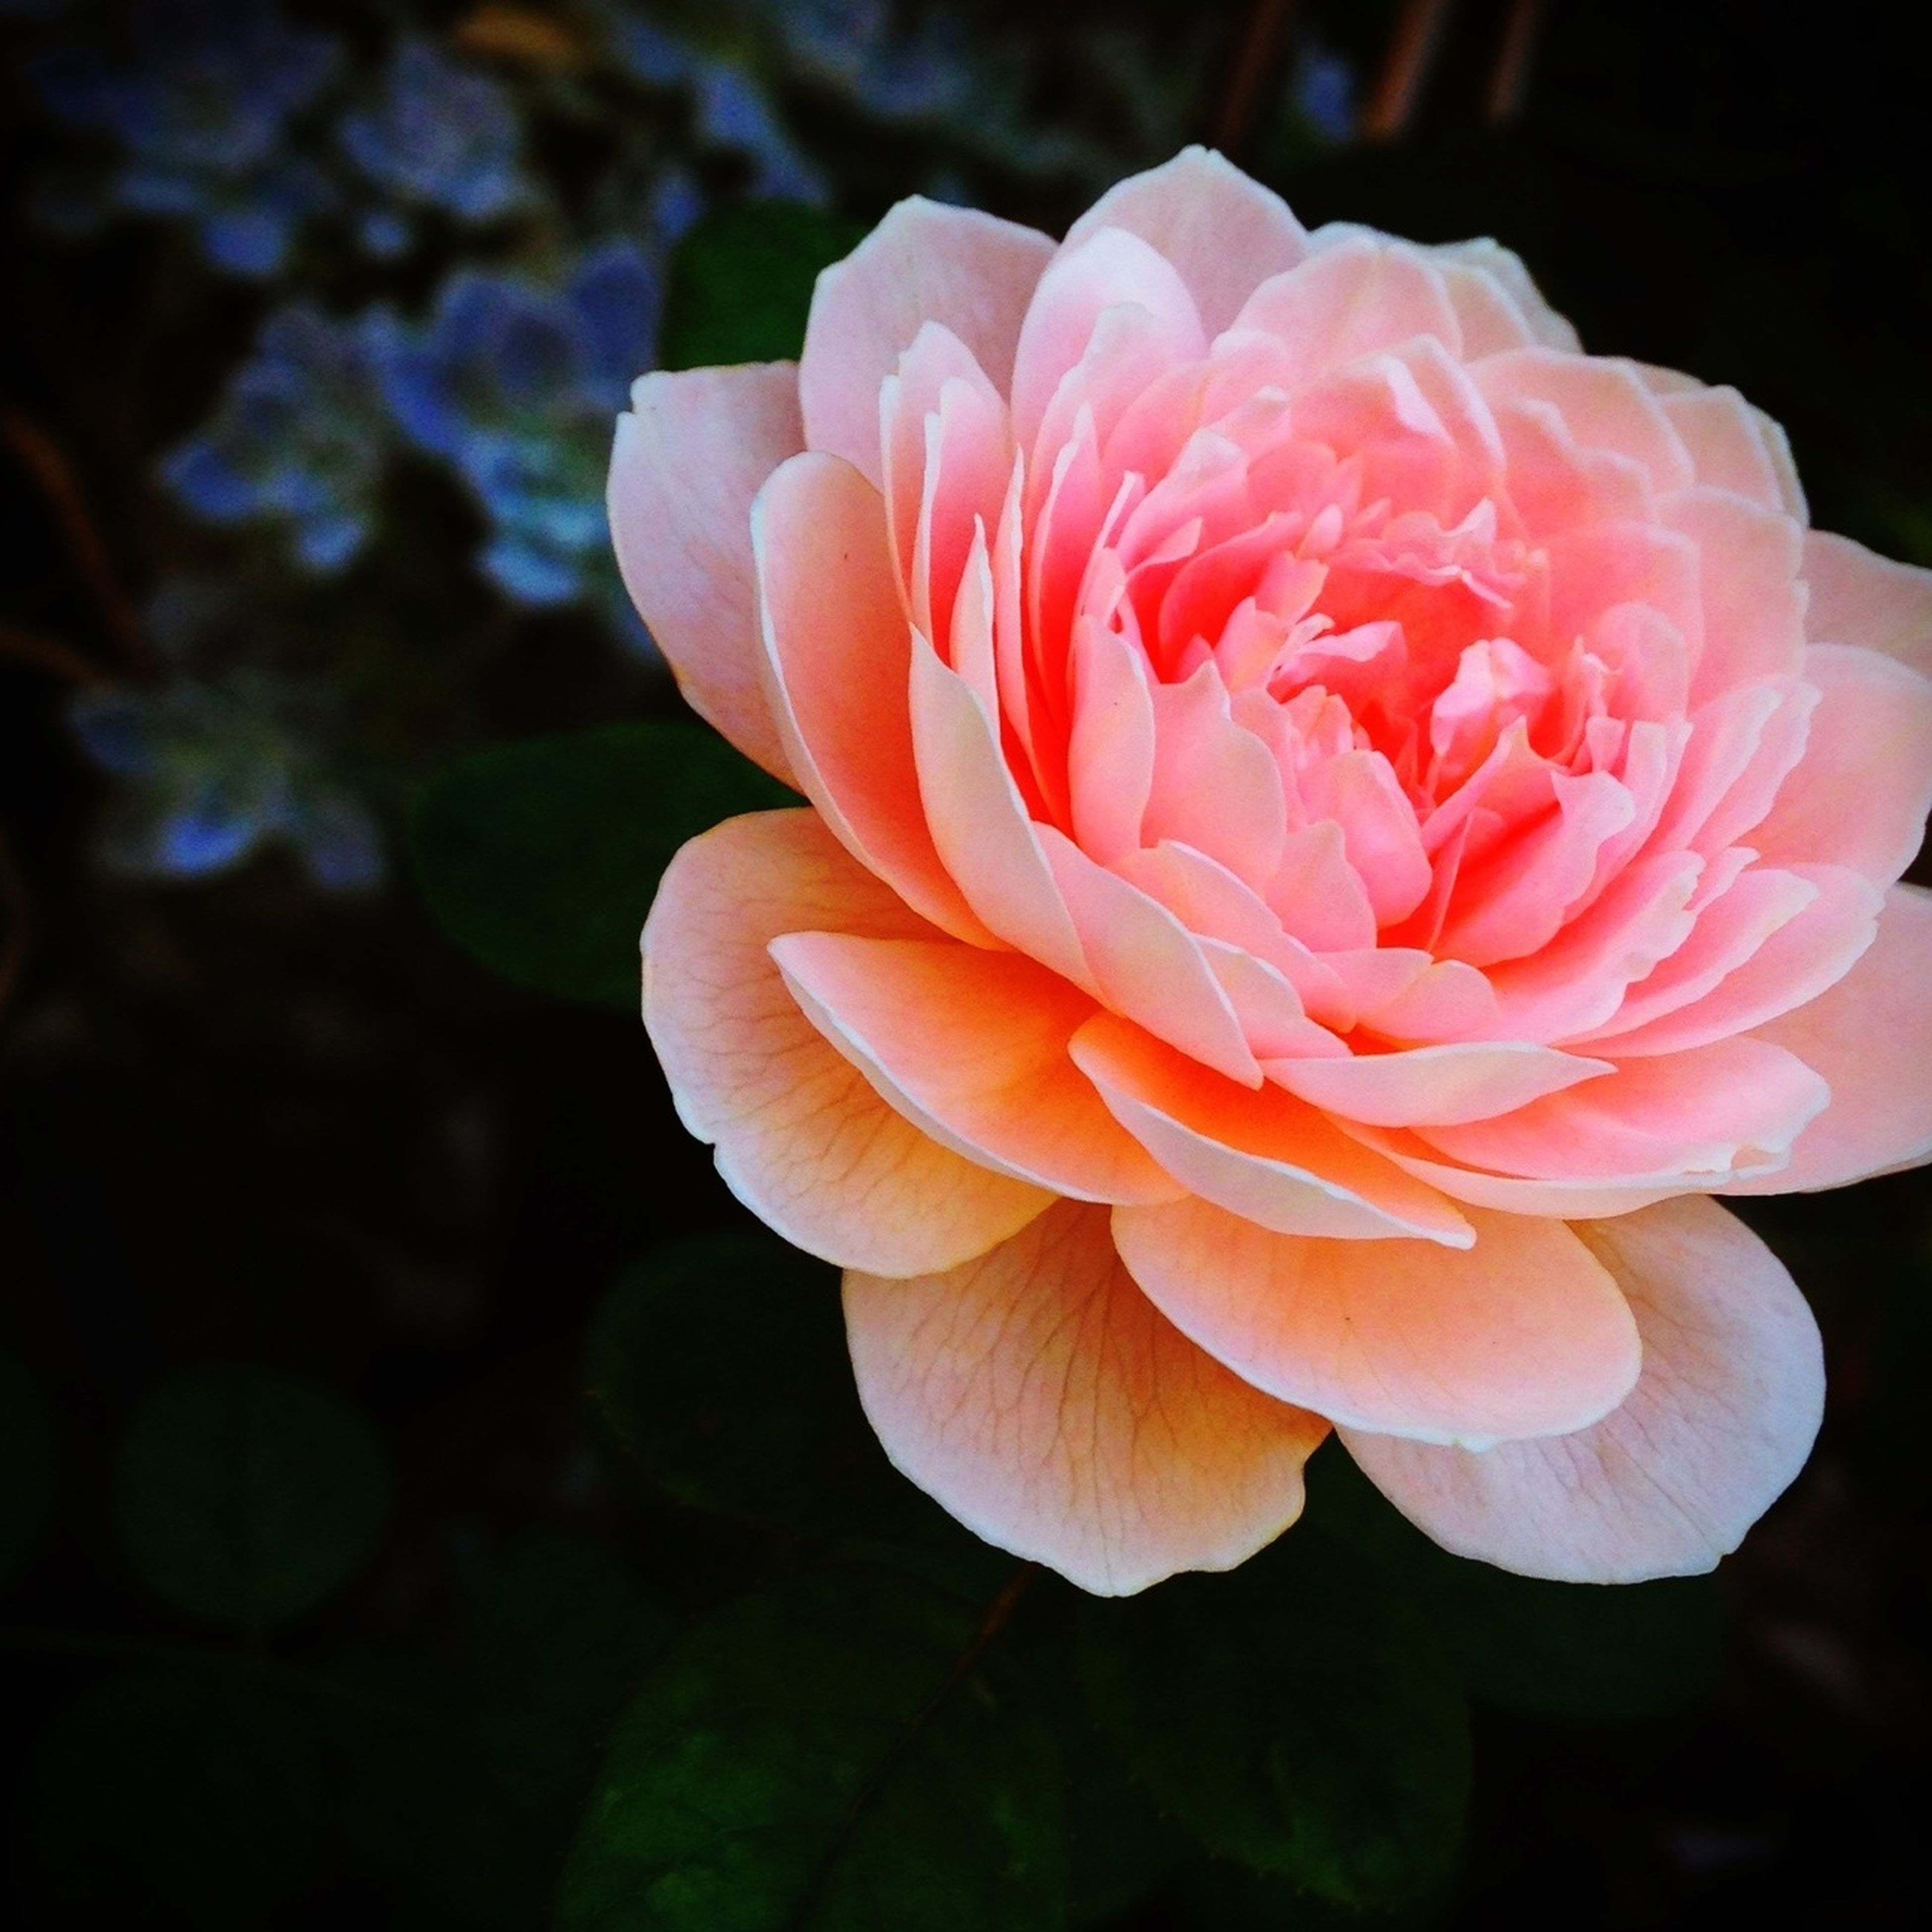 flower, petal, flower head, fragility, freshness, beauty in nature, close-up, growth, blooming, single flower, rose - flower, nature, focus on foreground, in bloom, plant, blossom, no people, park - man made space, outdoors, pink color